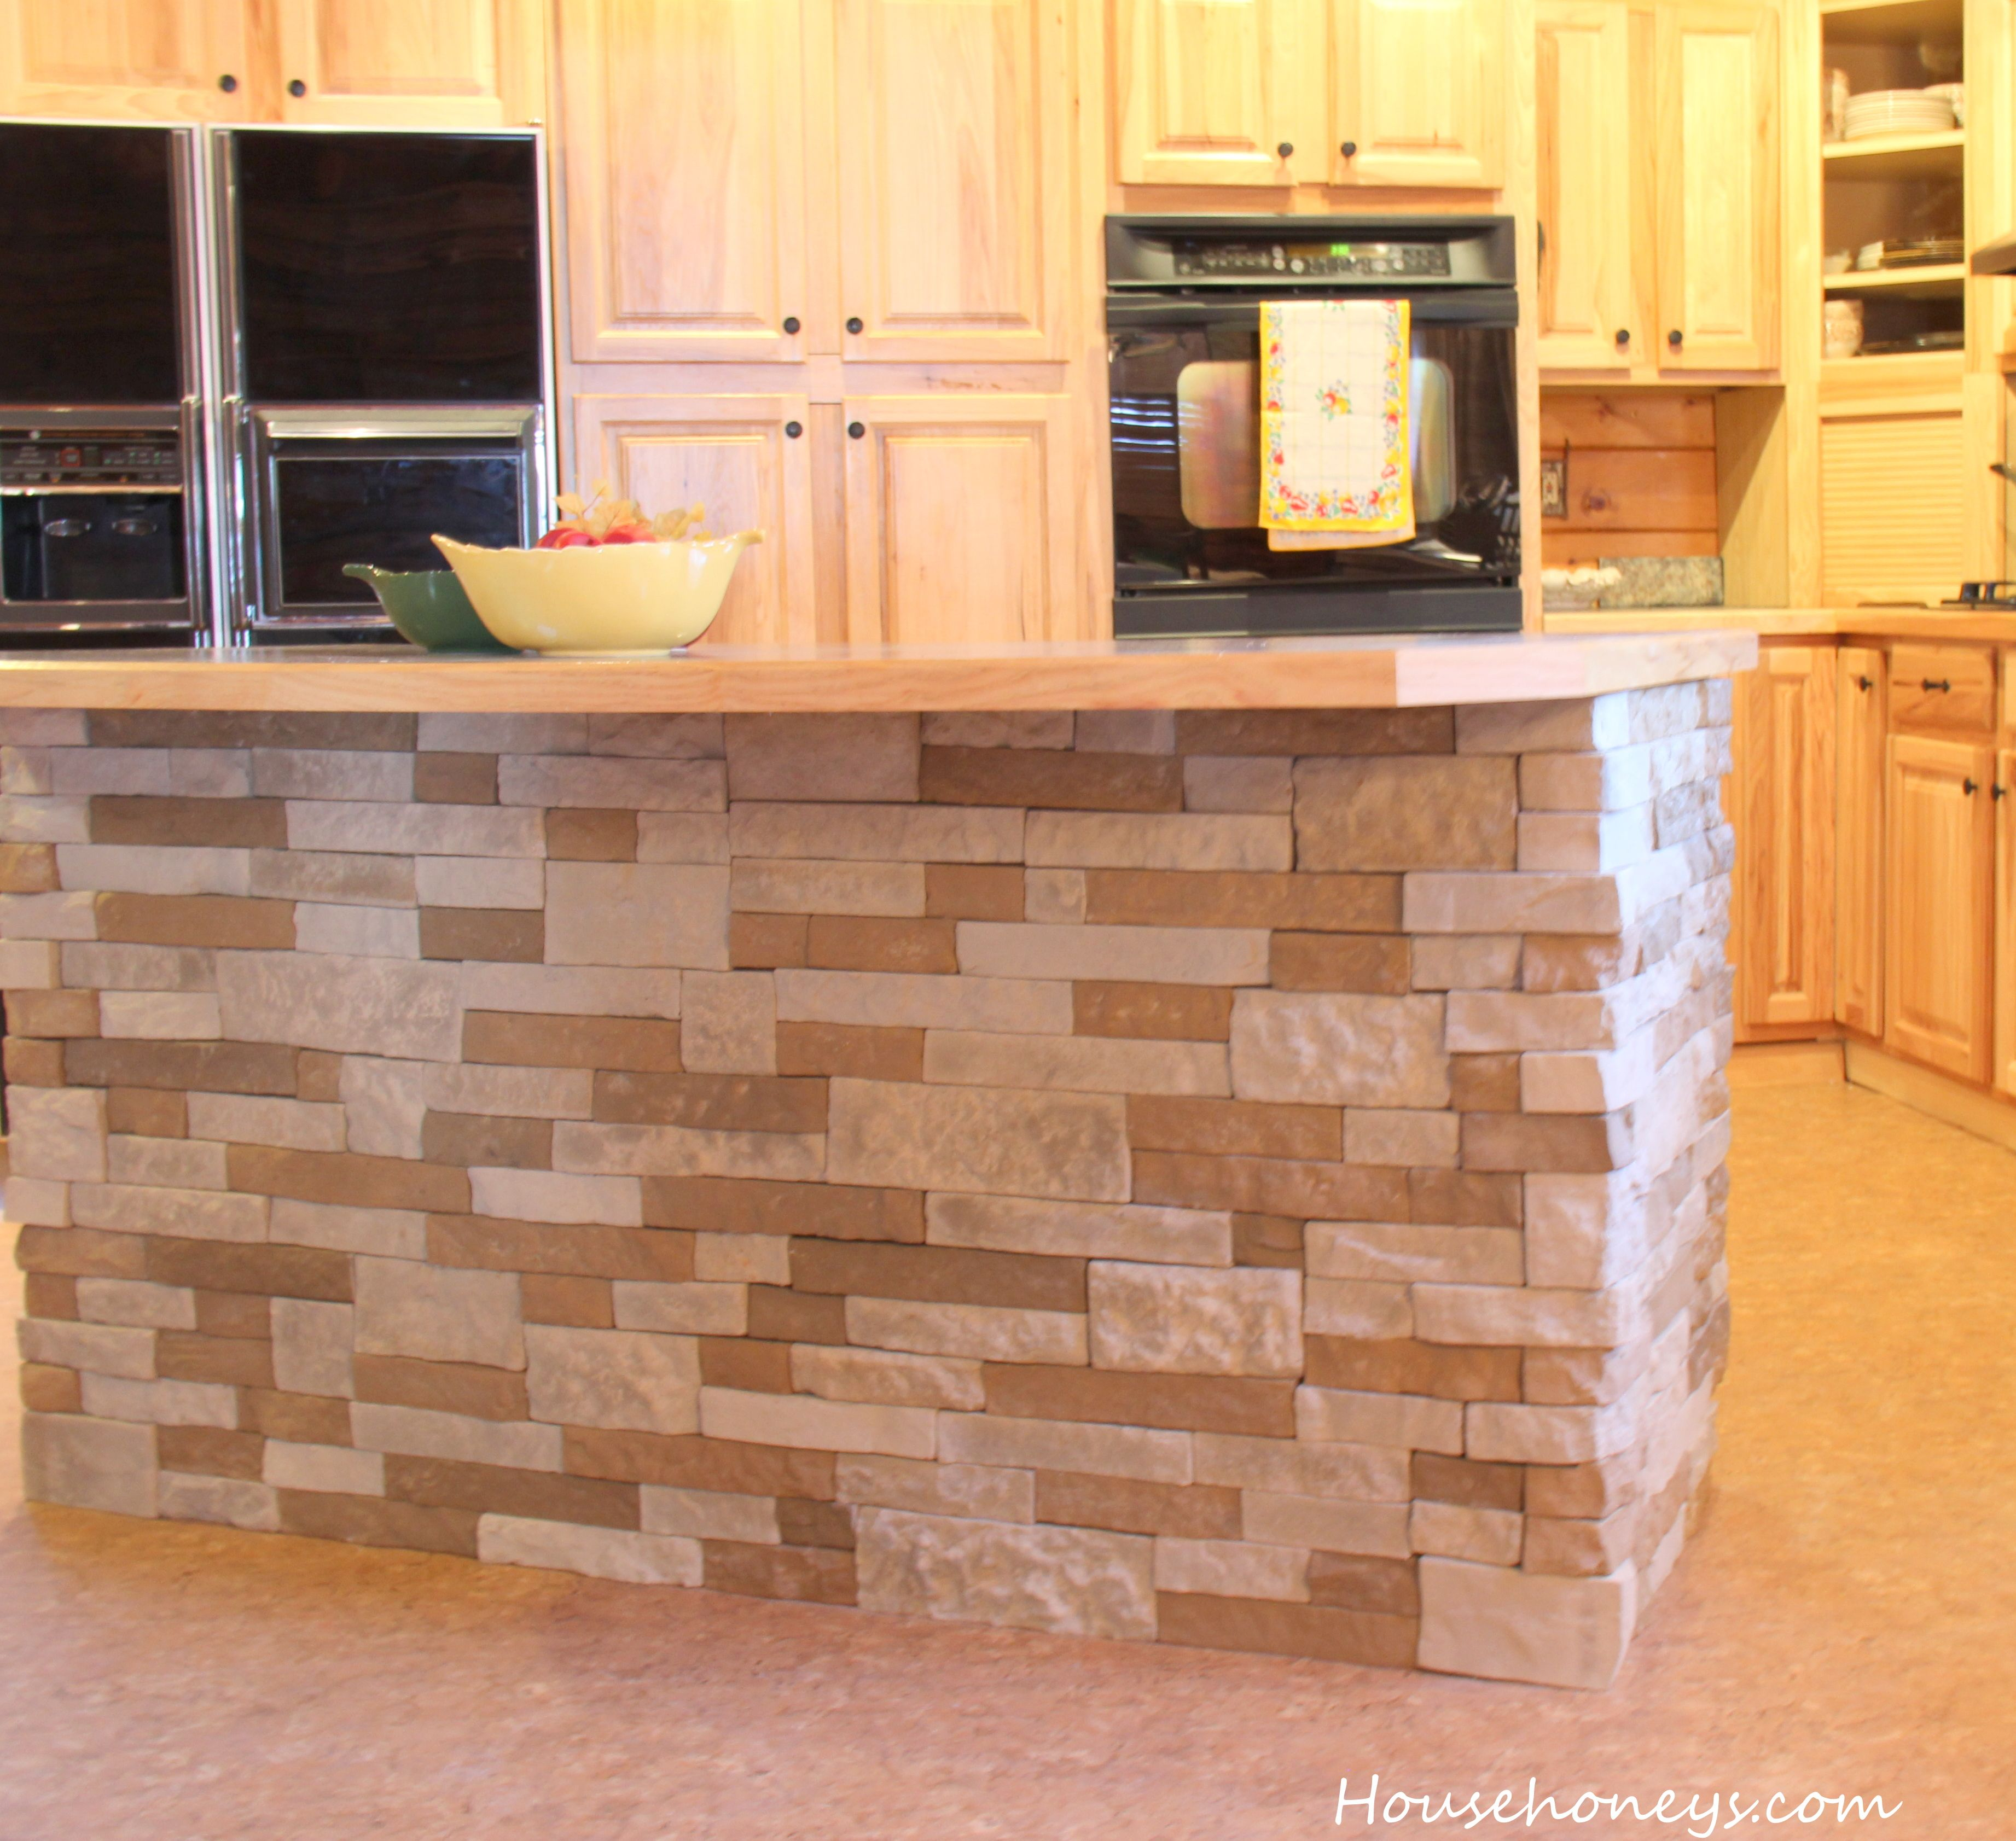 For Kitchen Island Kitchen Island Using Airstone For The Home Pinterest Kitchen